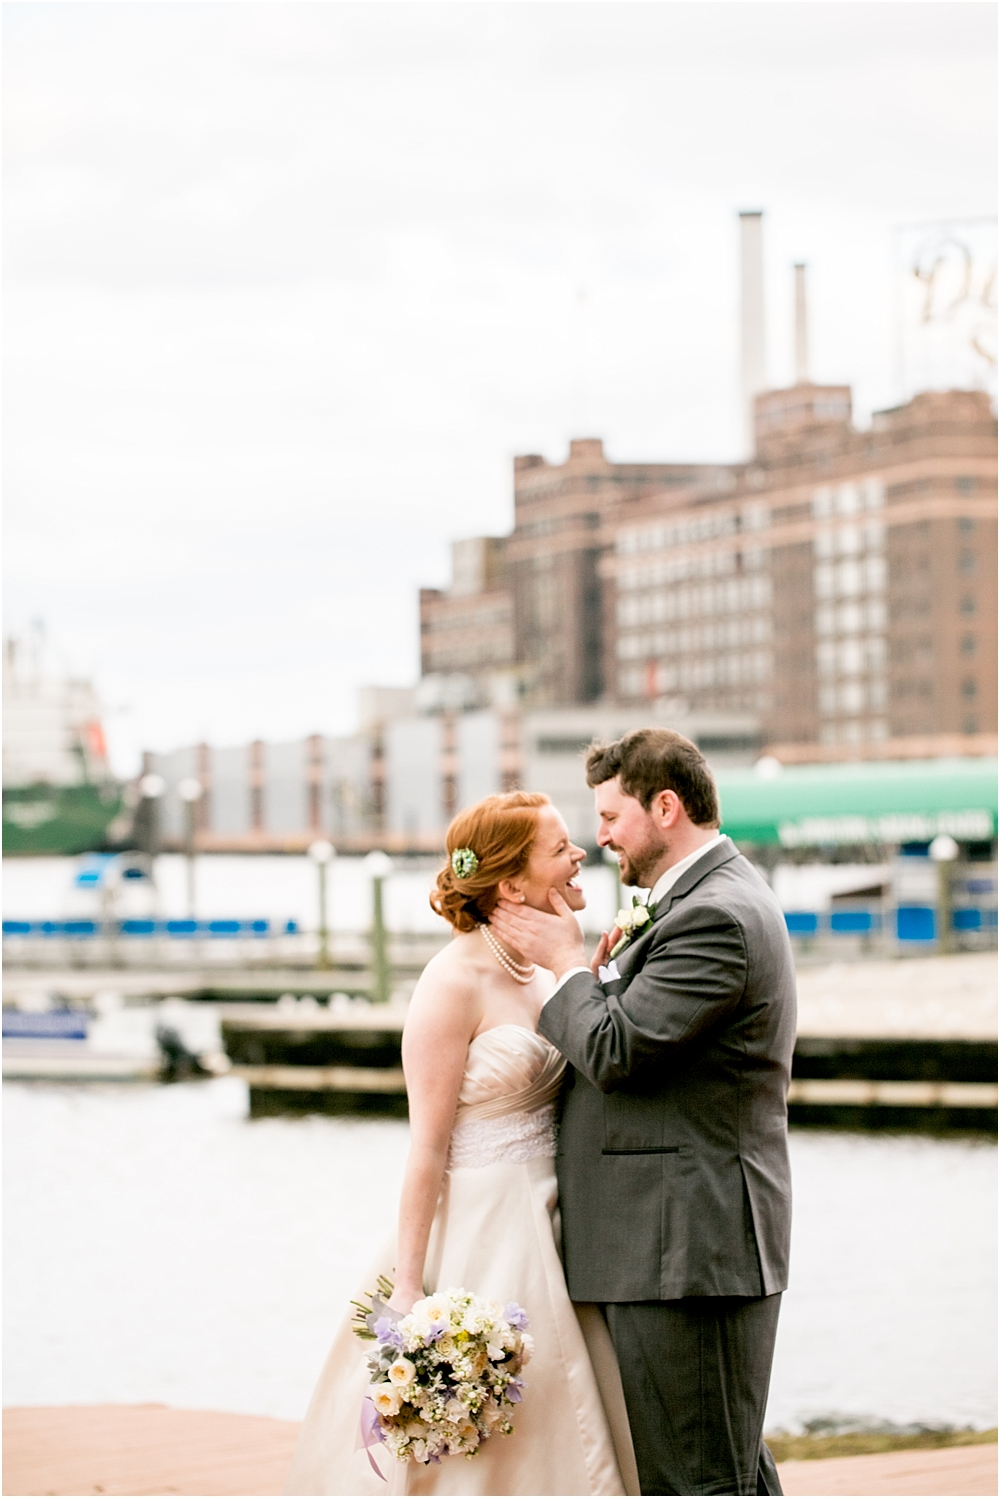 miriam michael baltimore museum of industry wedding living radiant photography_0030.jpg